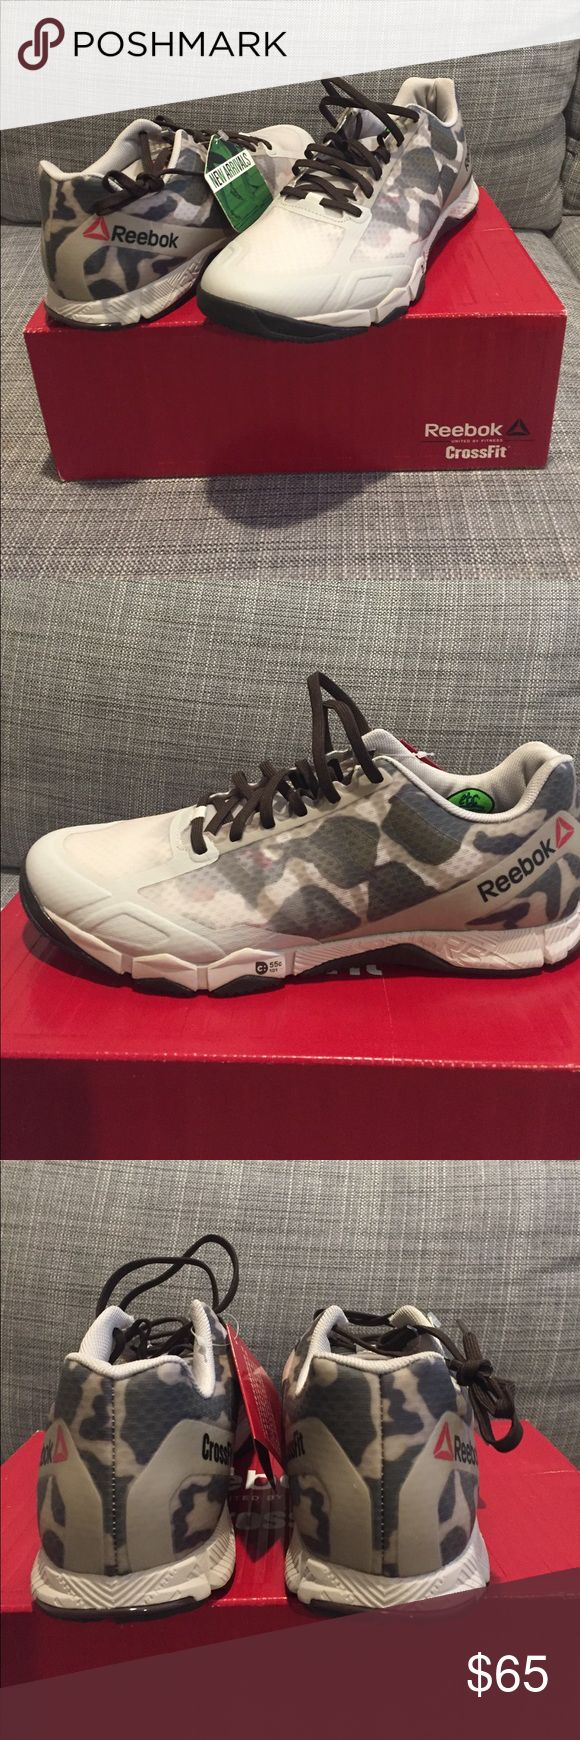 Reebok Crossfit speed training sneaker. Size 9 Reebok Crossfit speed training sneaker. Size 9. Sand/green/alloy/brown. Never worn  USA 9, UK 8, EUR 42 Reebok Shoes Athletic Shoes